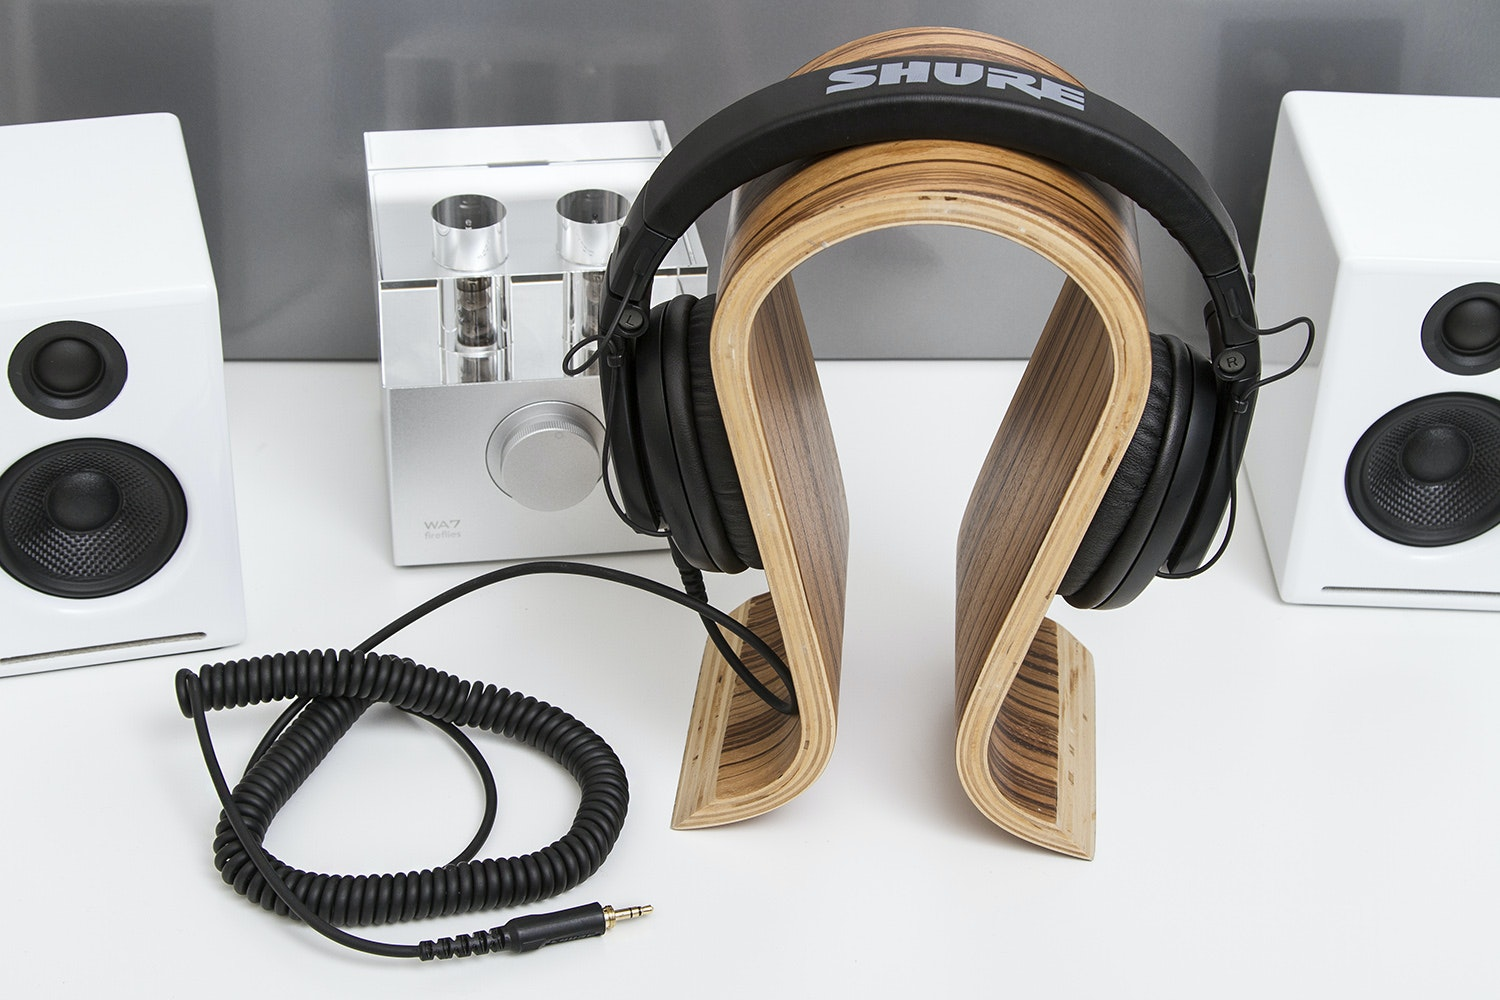 Shure SRH440 Headphones